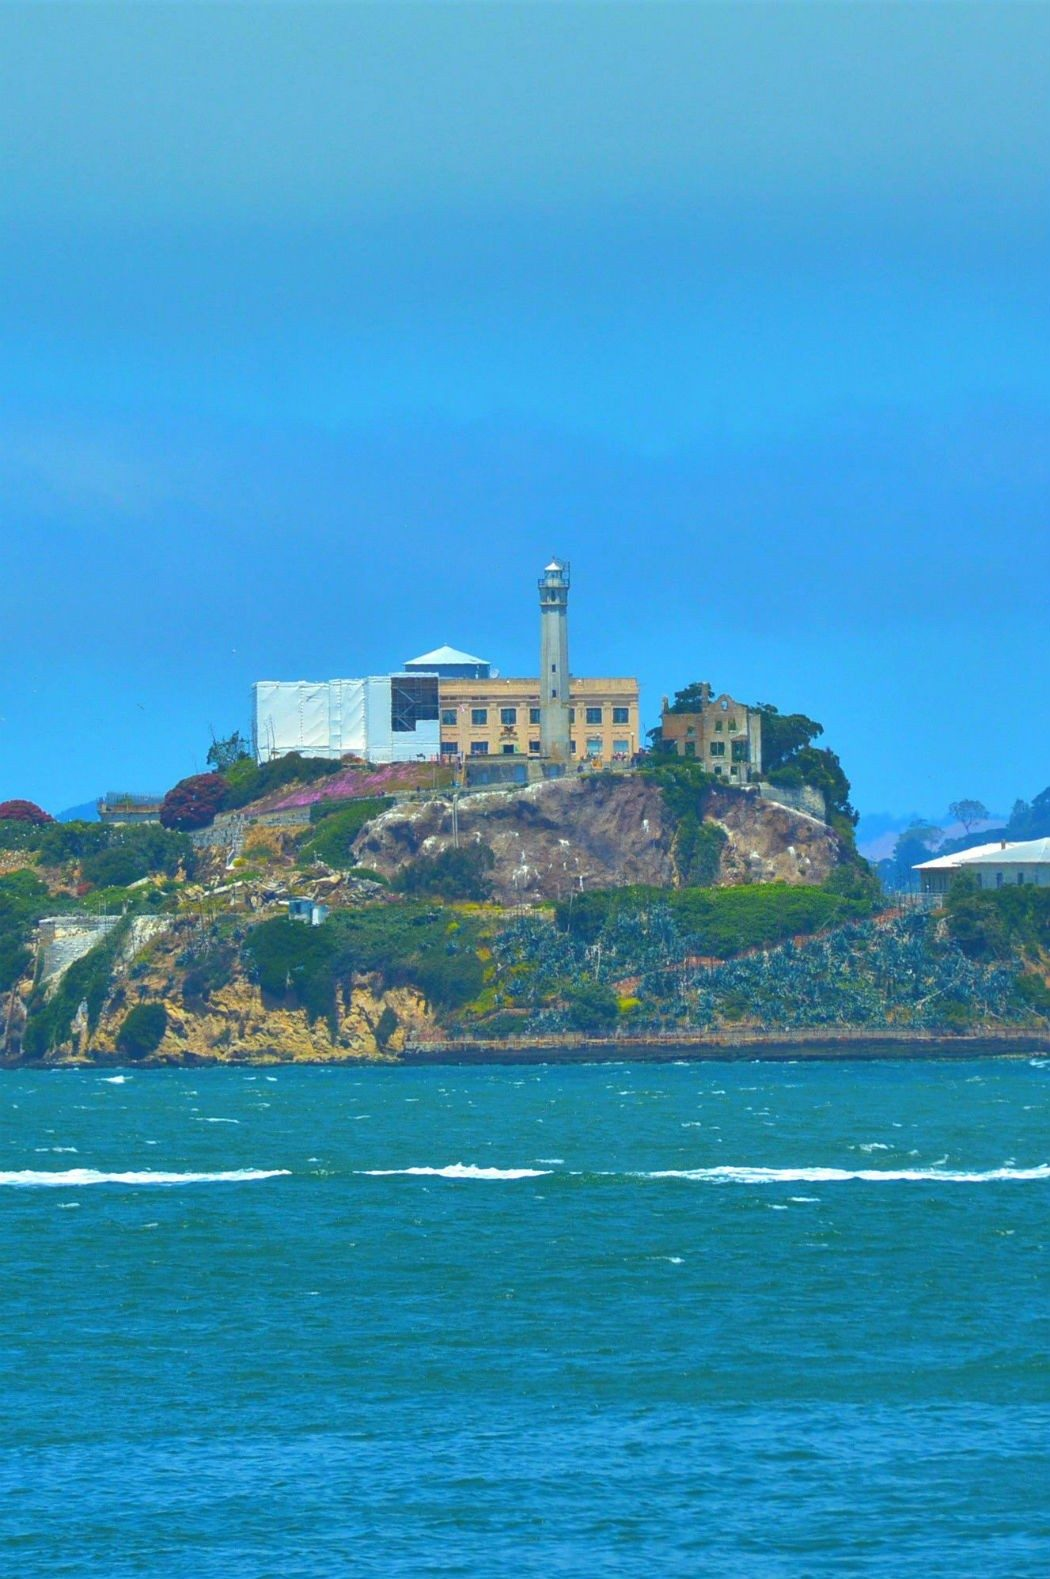 Alcatraz island seen from the ferry